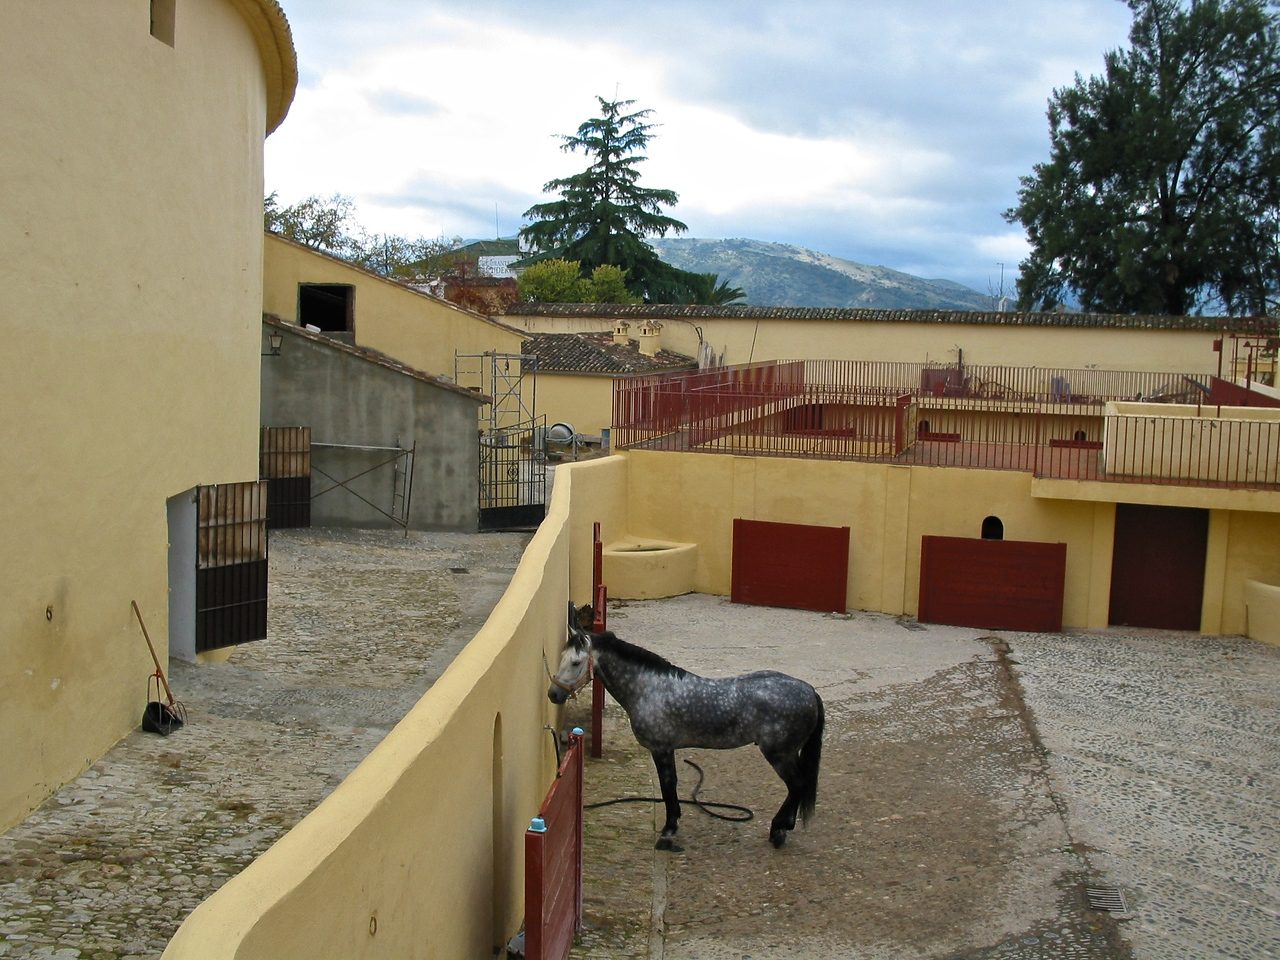 This horse guards the bull pens where bulls are kept prior to entering the ring.